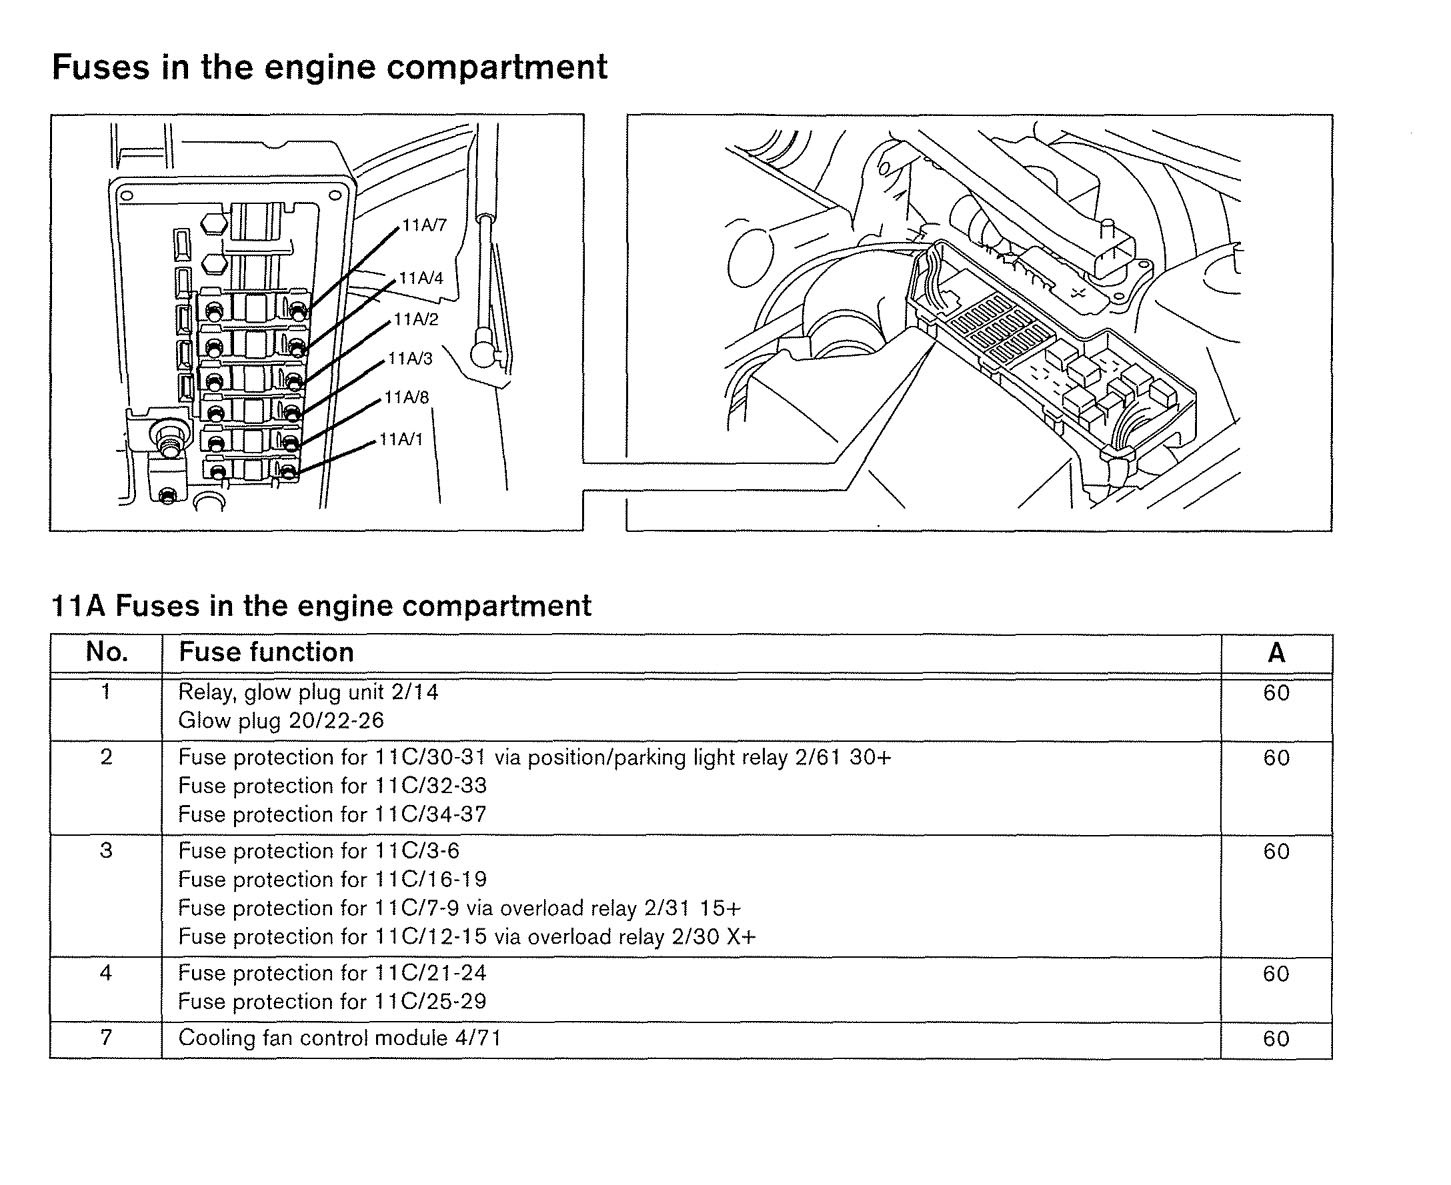 Volvo v70 2002 wiring diagrams fuse panel carknowledge volvo v70 wiring diagram fuse panel part 1 sciox Choice Image